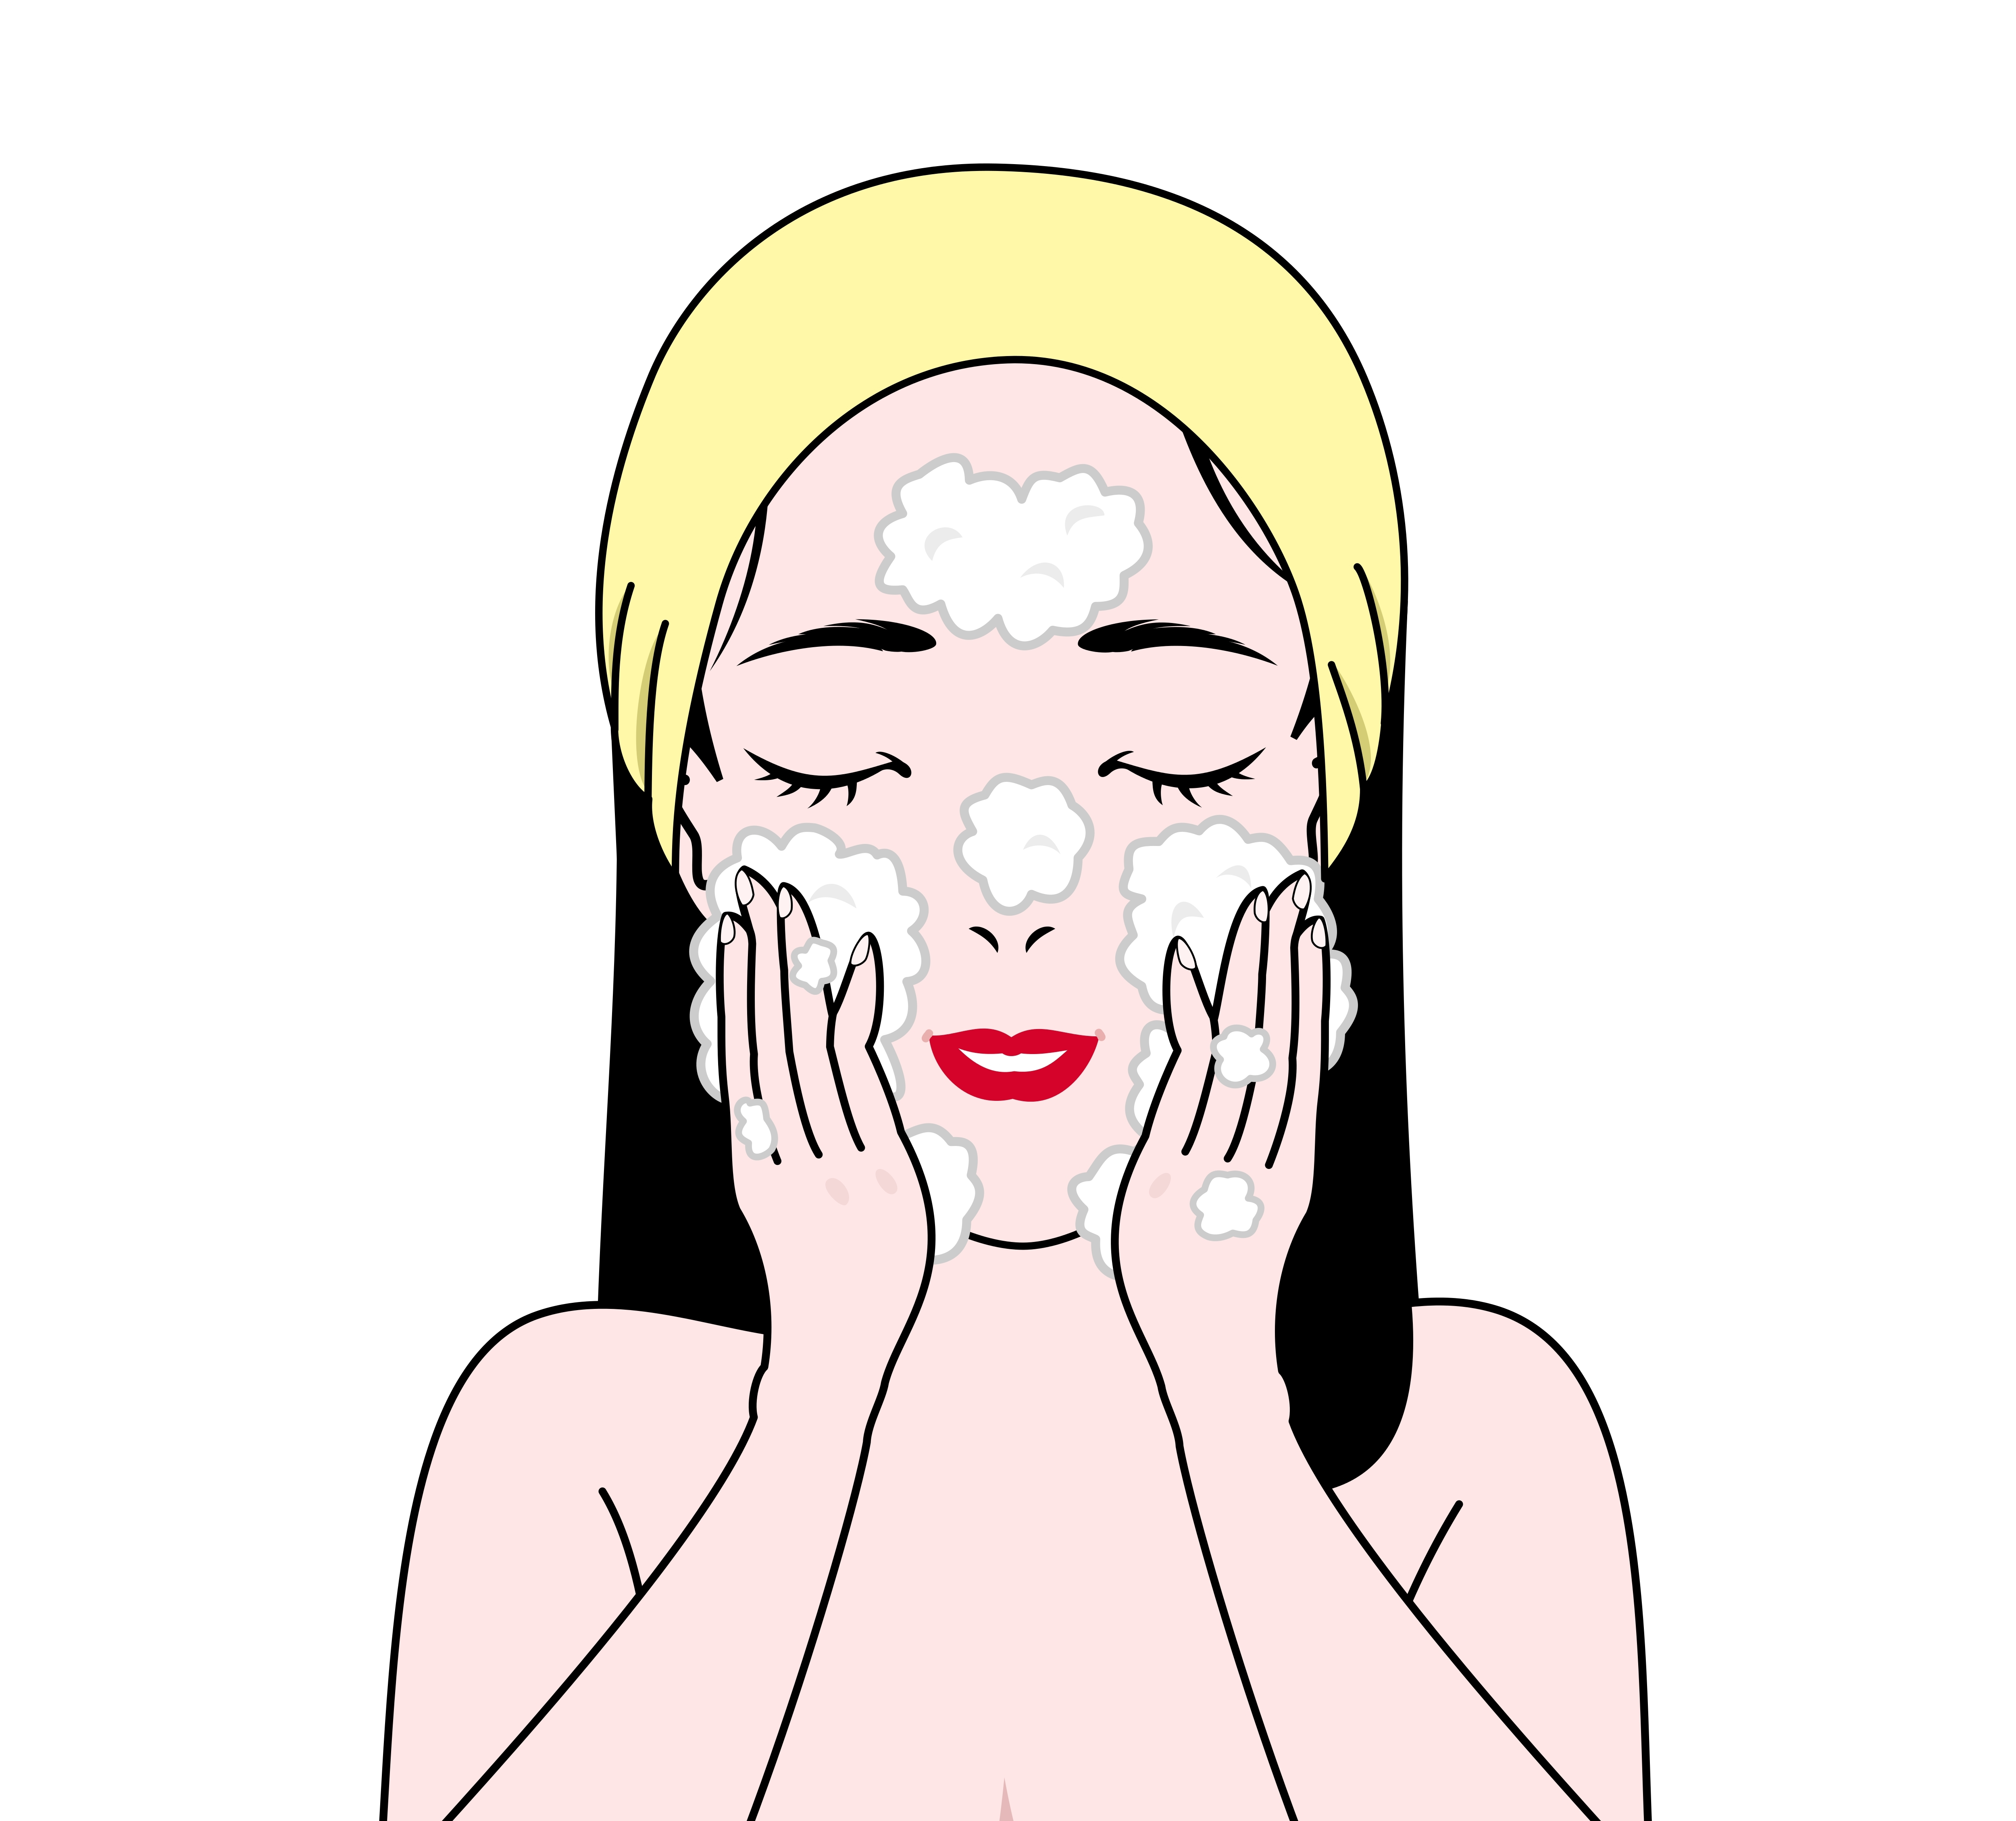 I have acne and here's how I've learned to own it